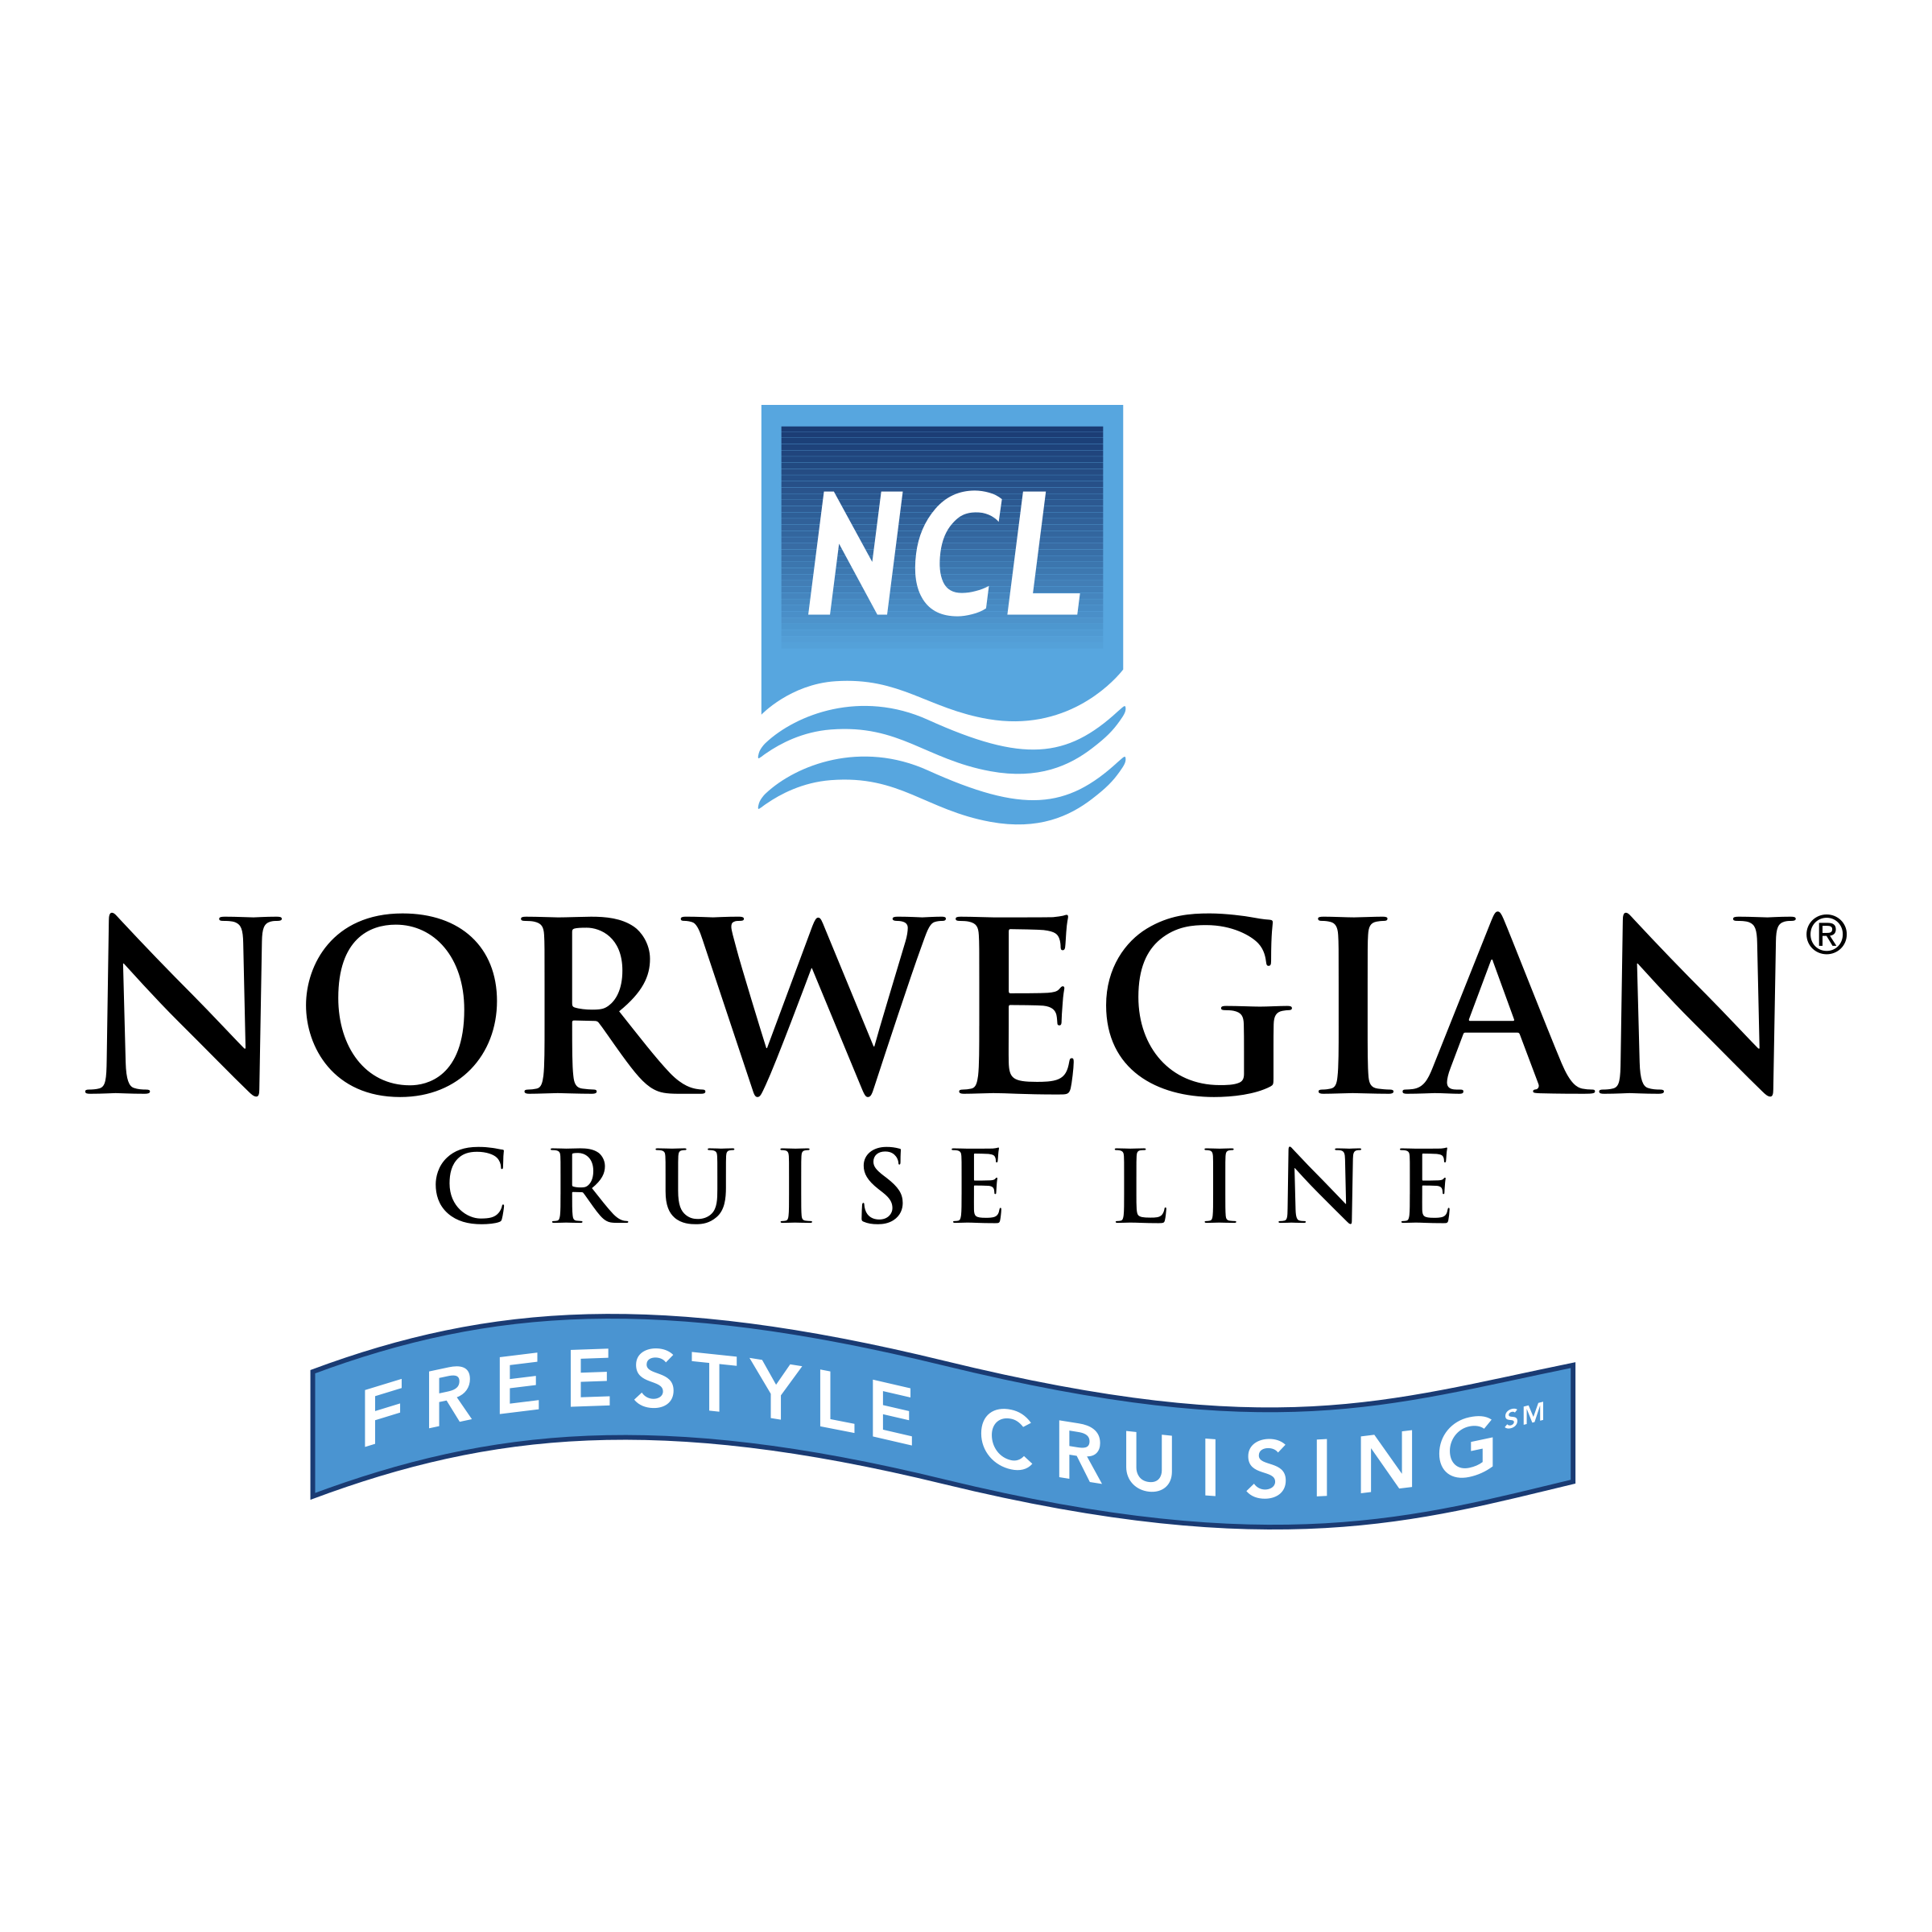 NCL Logo PNG Transparent & SVG Vector.